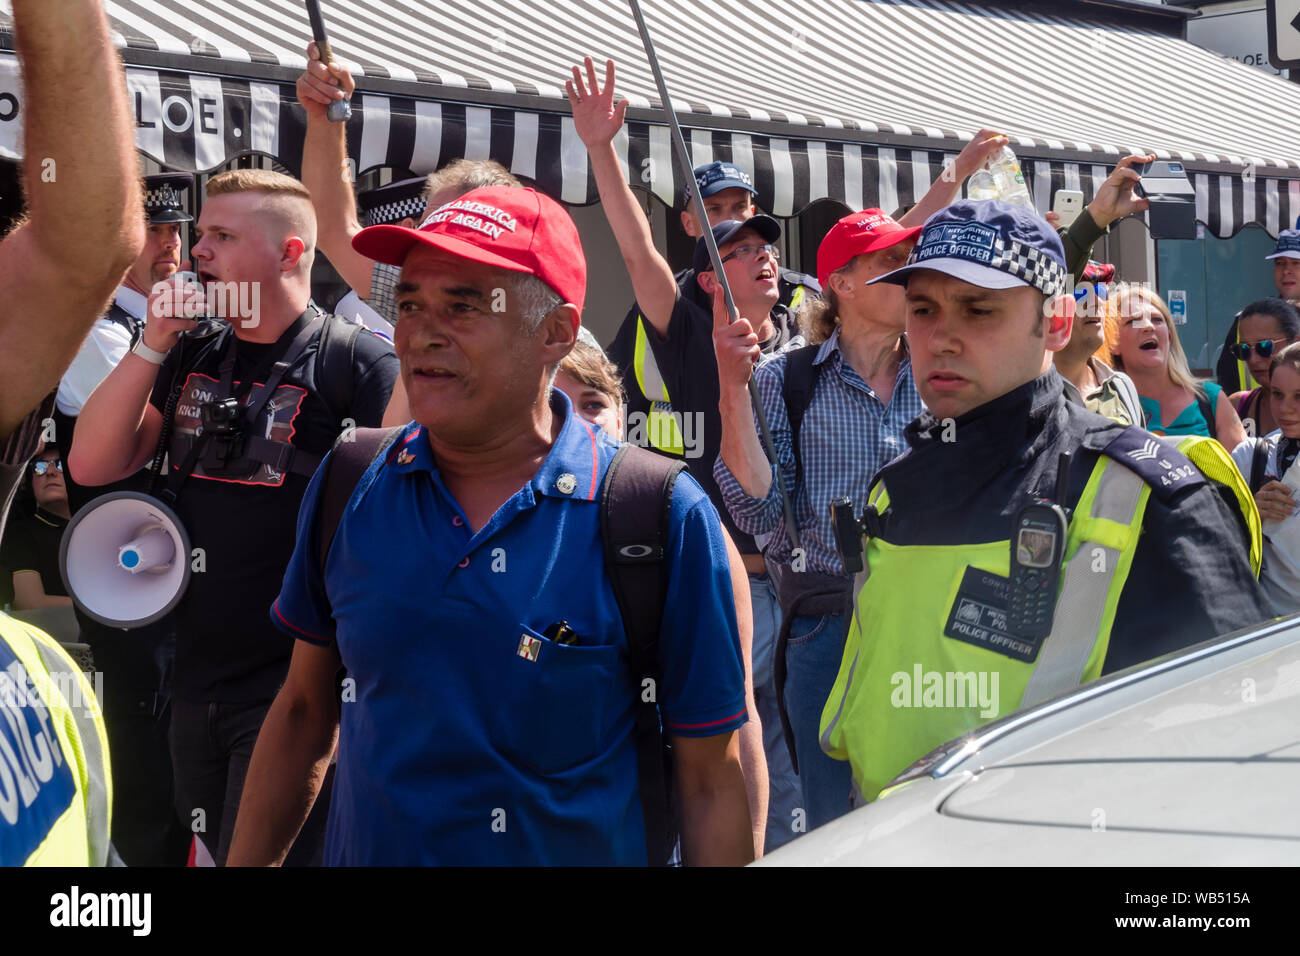 London, UK. 24th August 2019. Police escort marchers coming to join the protest at the BBC by Tommy Robinson supporters who claim he is in jail for journalism. He was sentenced to 9 months for 3 offences outside Leeds Crown Court which could have led to the collapse of a grooming gang trial, and has previous convictions for violence, financial and immigration frauds, drug possession and public order offences. Police kept the two groups apart. Robinson supporters were later joined by marchers from Trafalgar Square, and a larger group from Stand Up to Racism came to join Antifa. Peter Marshall/A Stock Photo